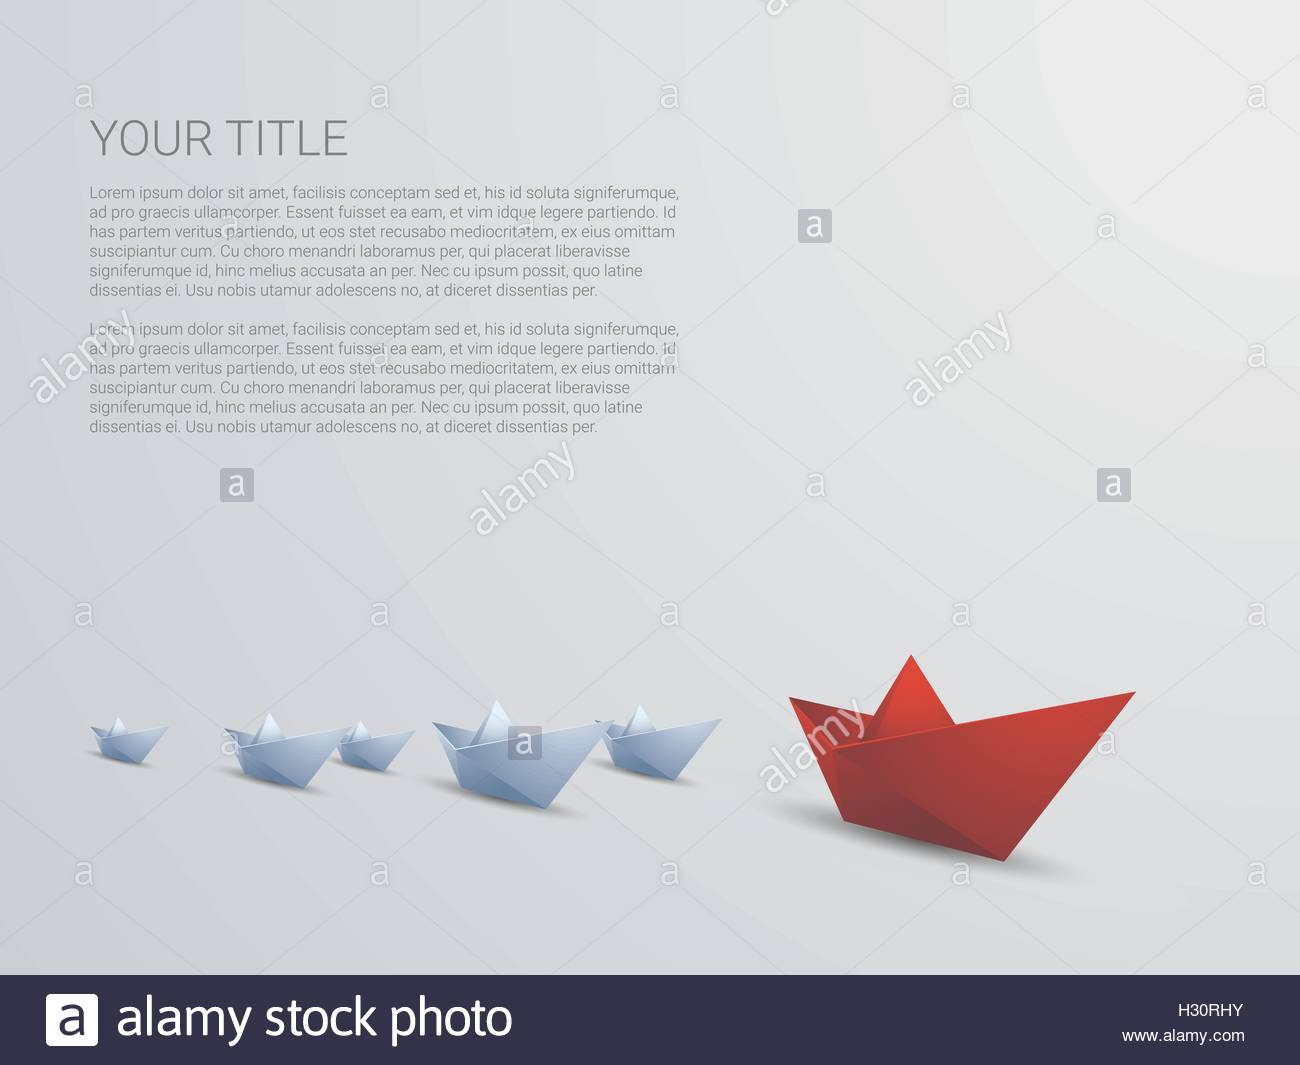 Leadership Business Concept Vector With Red Paper Boat Leading White Presentation Template And Space For Text